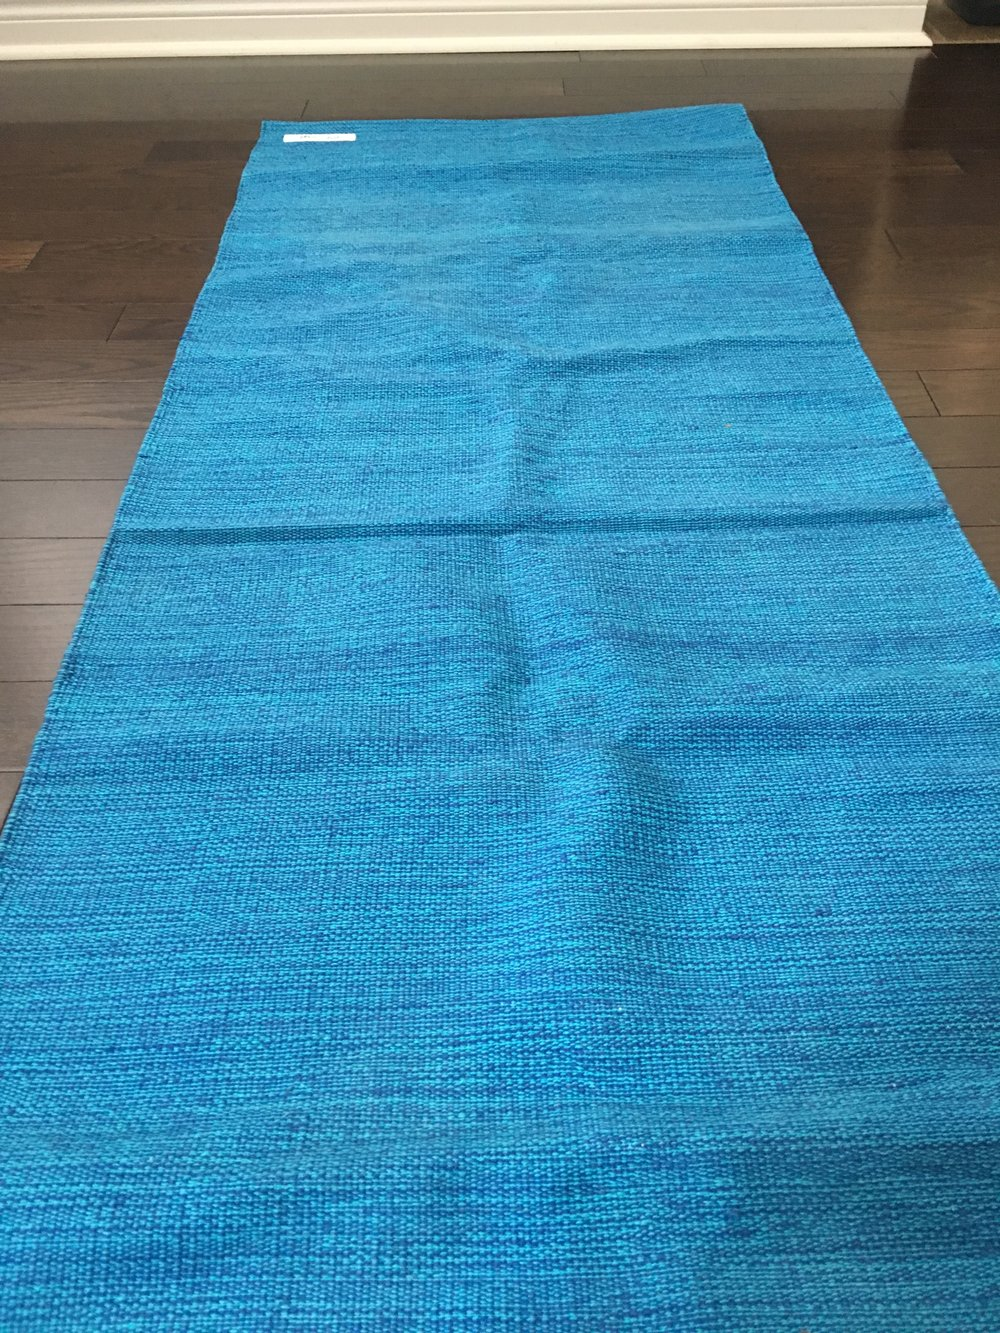 Here's my Ekaminhale Yoga Rug in blue.  Its stiff and firm but I love it.  You can get your own from Ekaminhale or if you are in Canada, you can get them from Amazon.